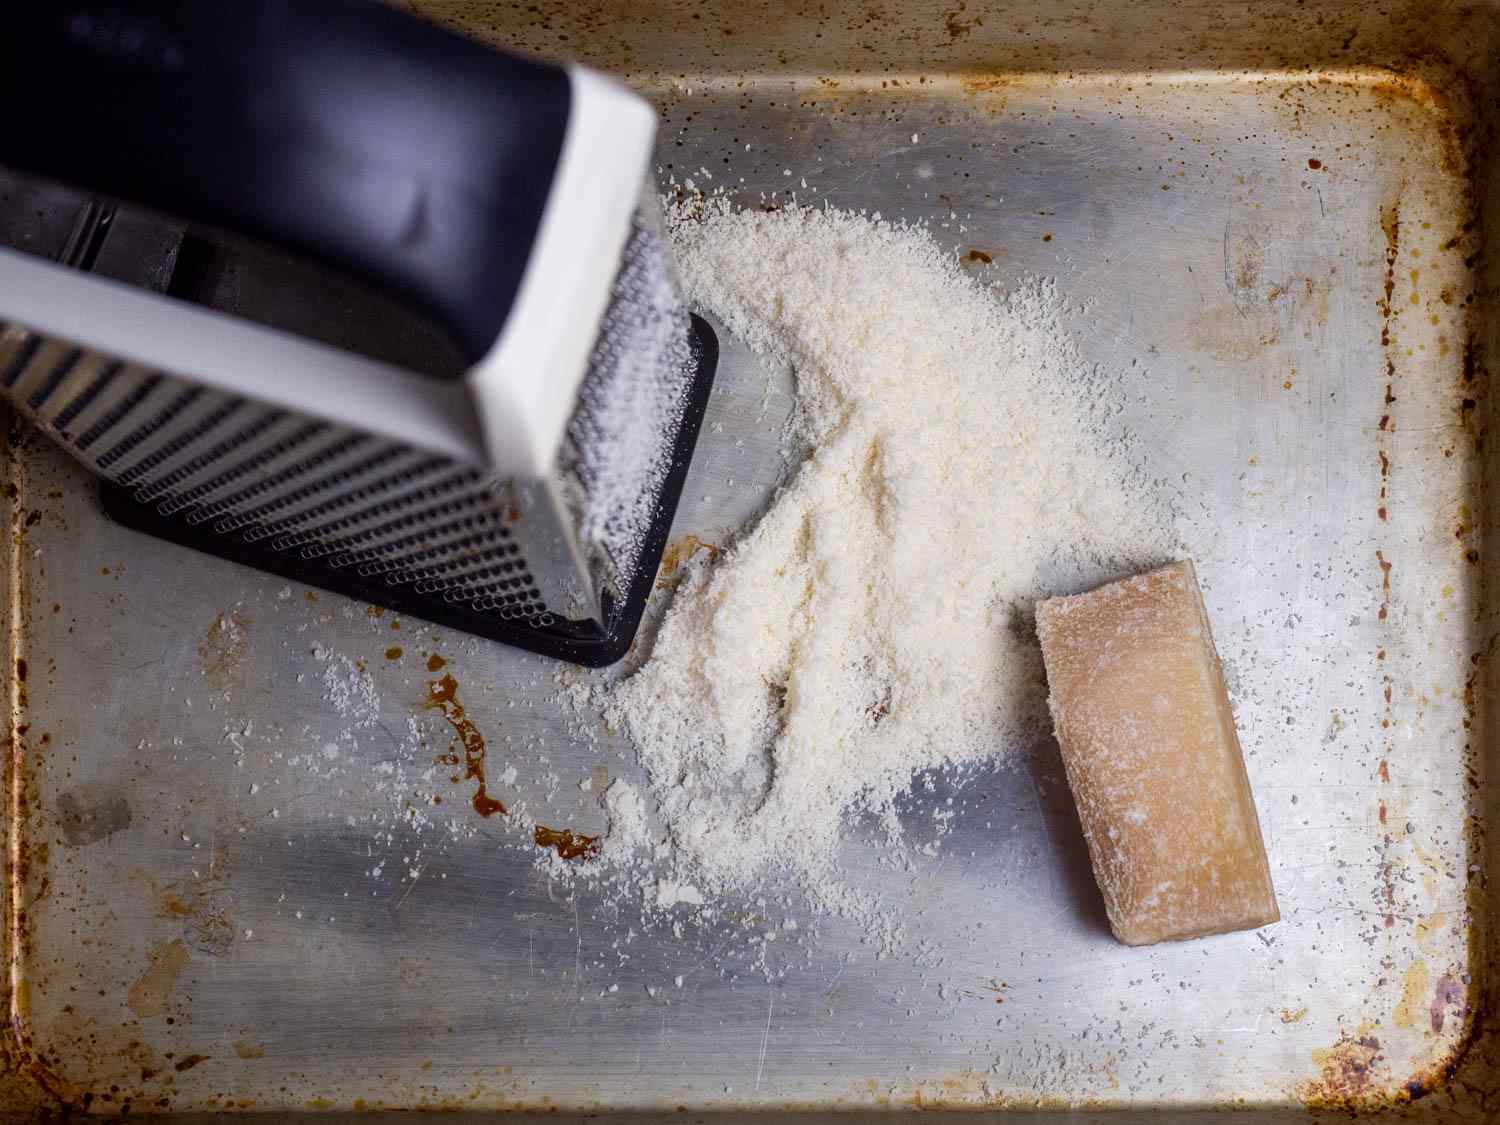 A box grater sites on a rimmed baking sheet alongside a pile of grated cheese and a chunk of Parmesan.